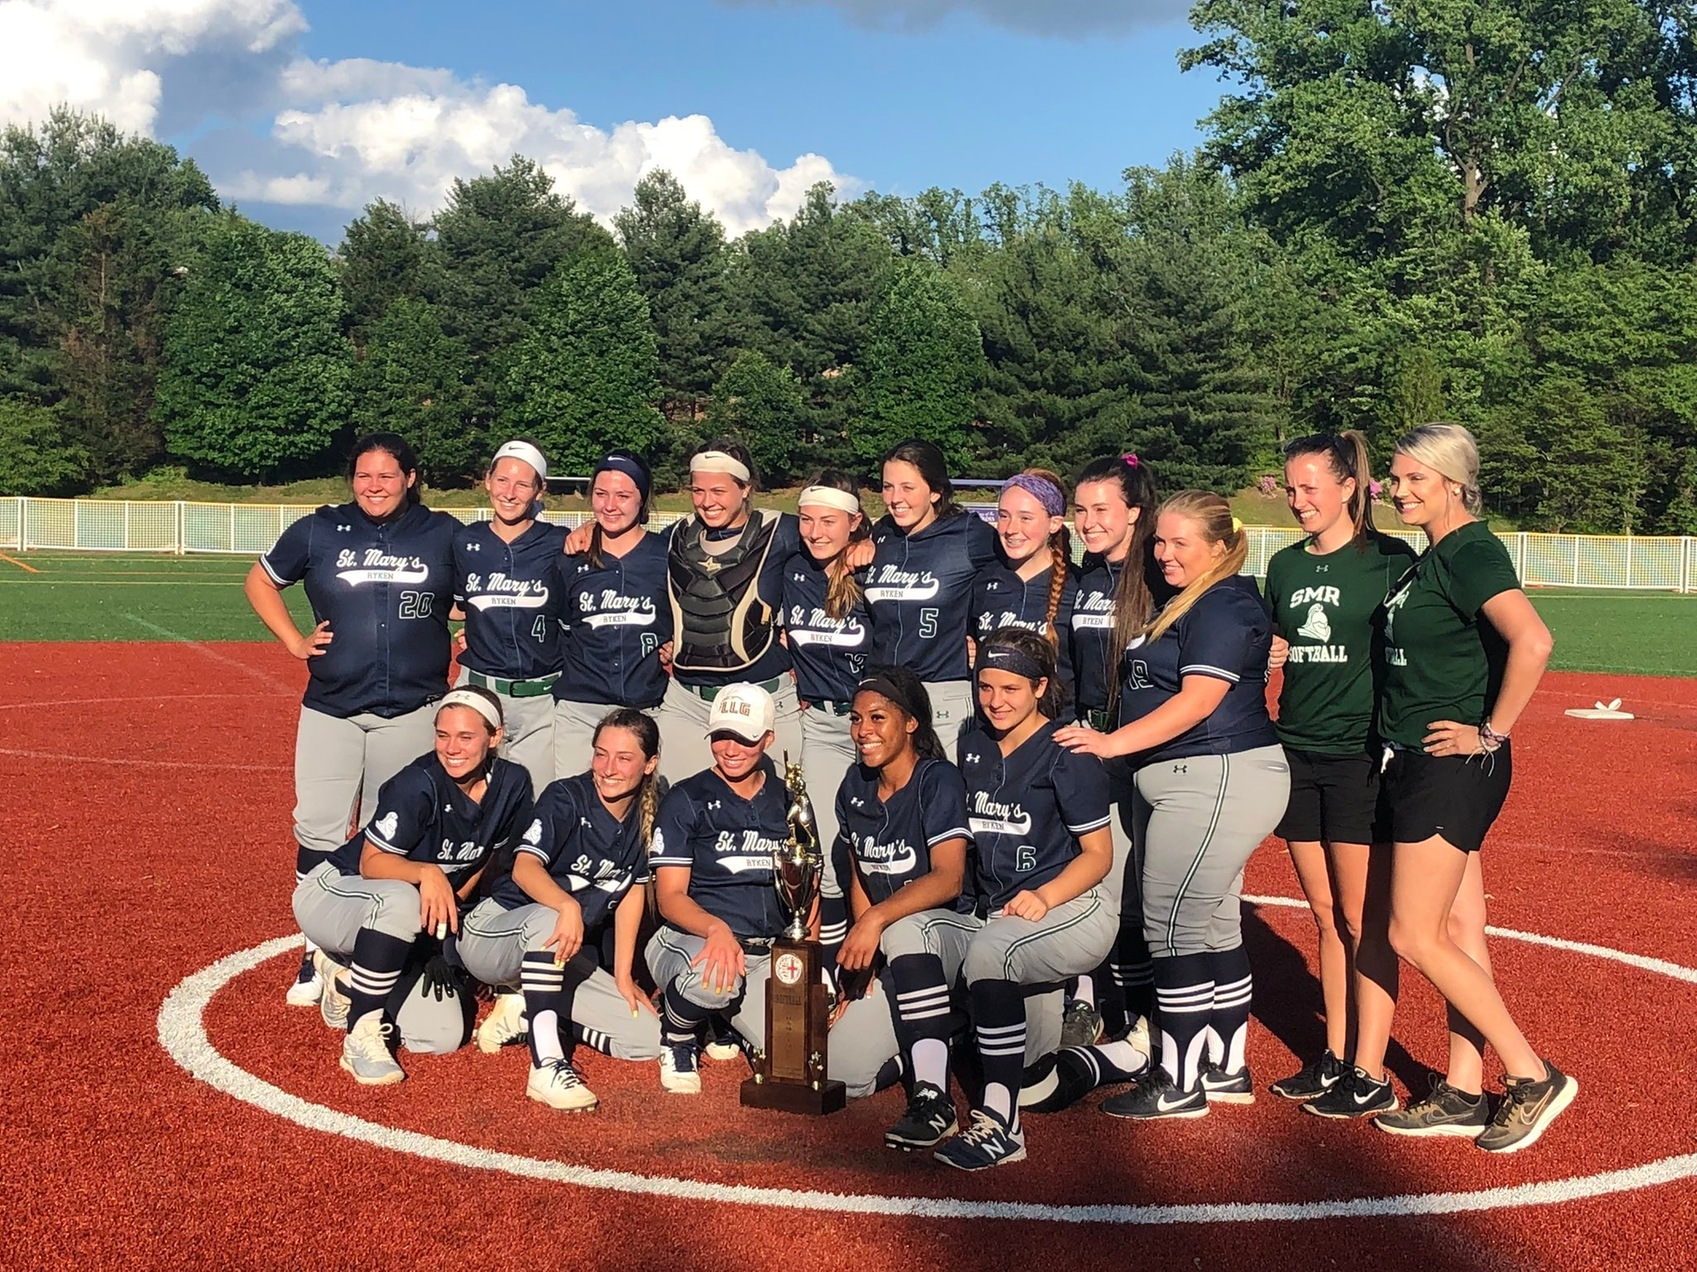 St. Mary's Ryken wins the WCAC Softball Championship in extra innings for their first title since 2015.